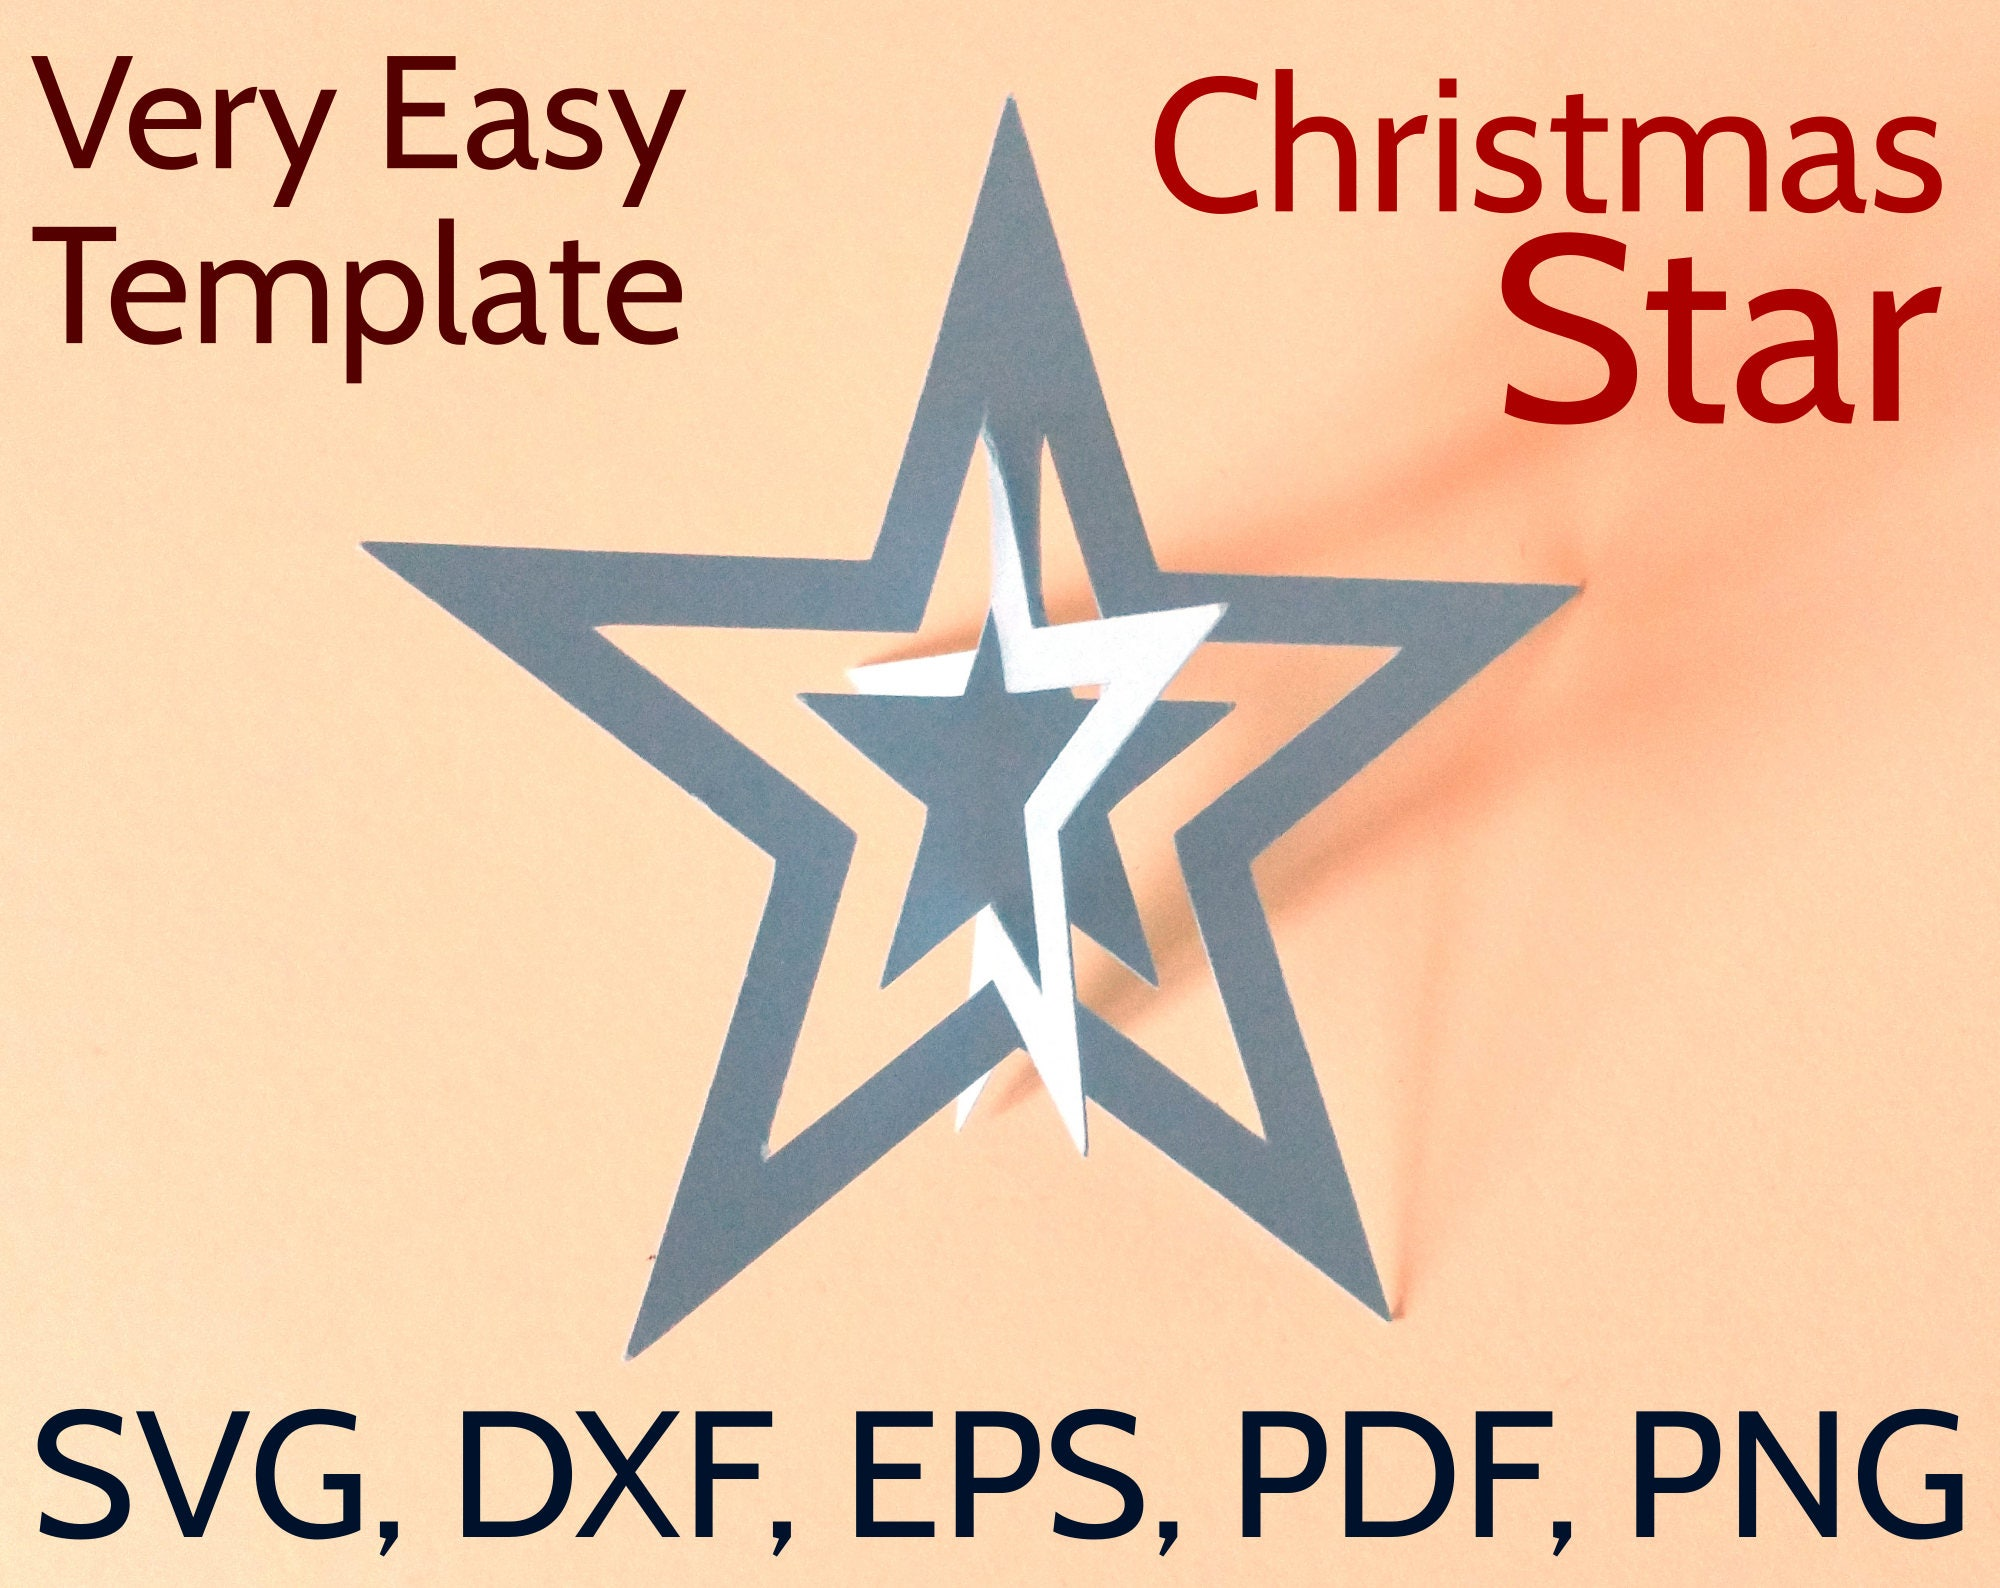 3d paper christmas star svg and pdf template 3d christmas star design chrismas svgs. Black Bedroom Furniture Sets. Home Design Ideas